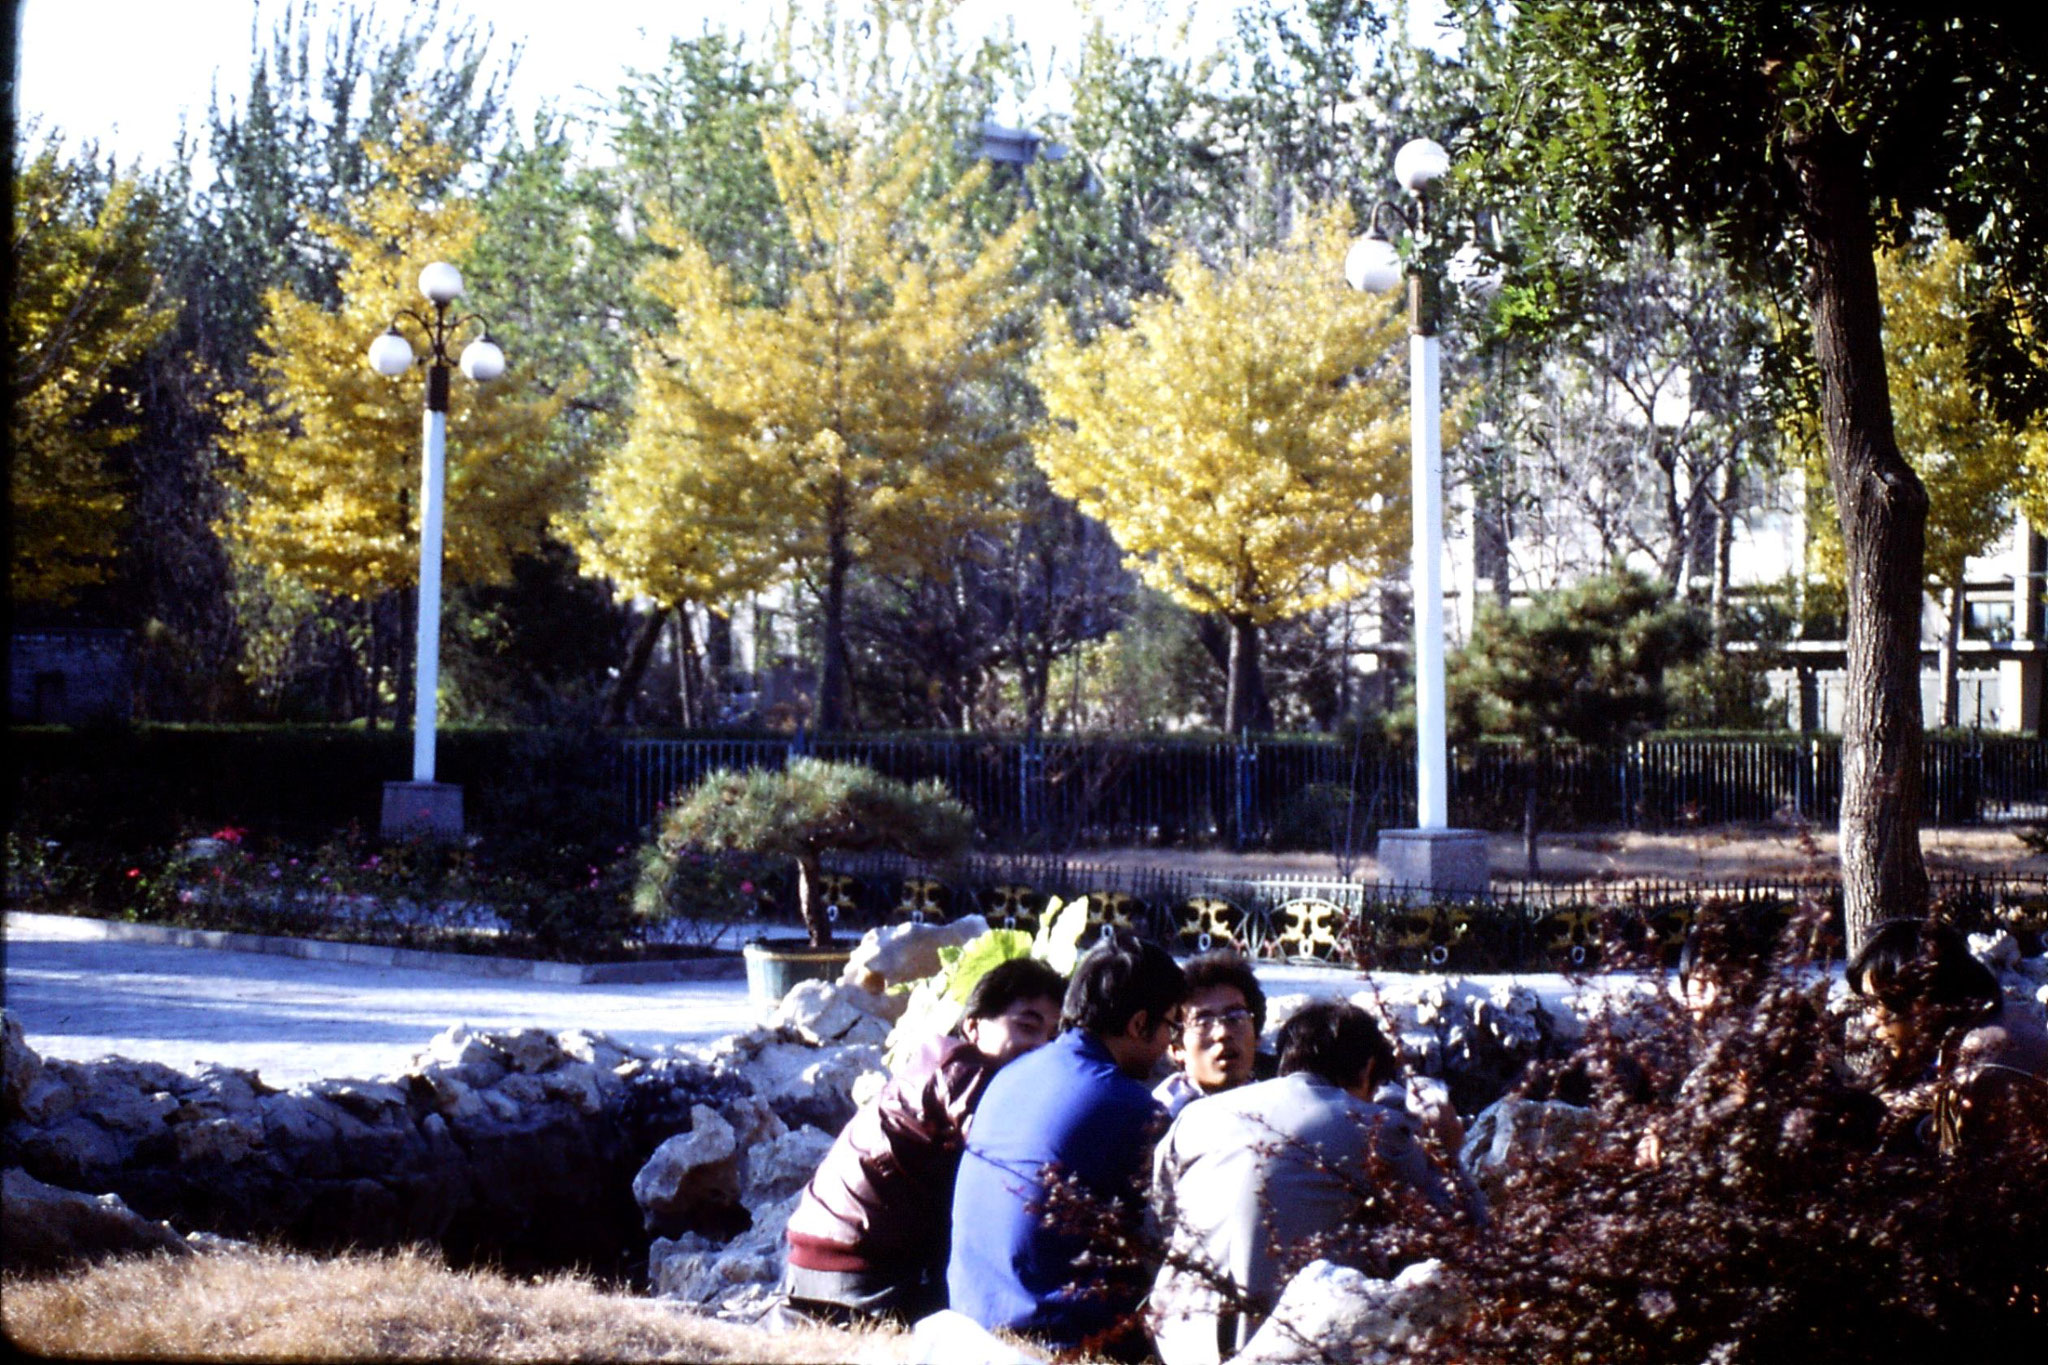 5/11/1988: 25: Beijing Inst. Technology